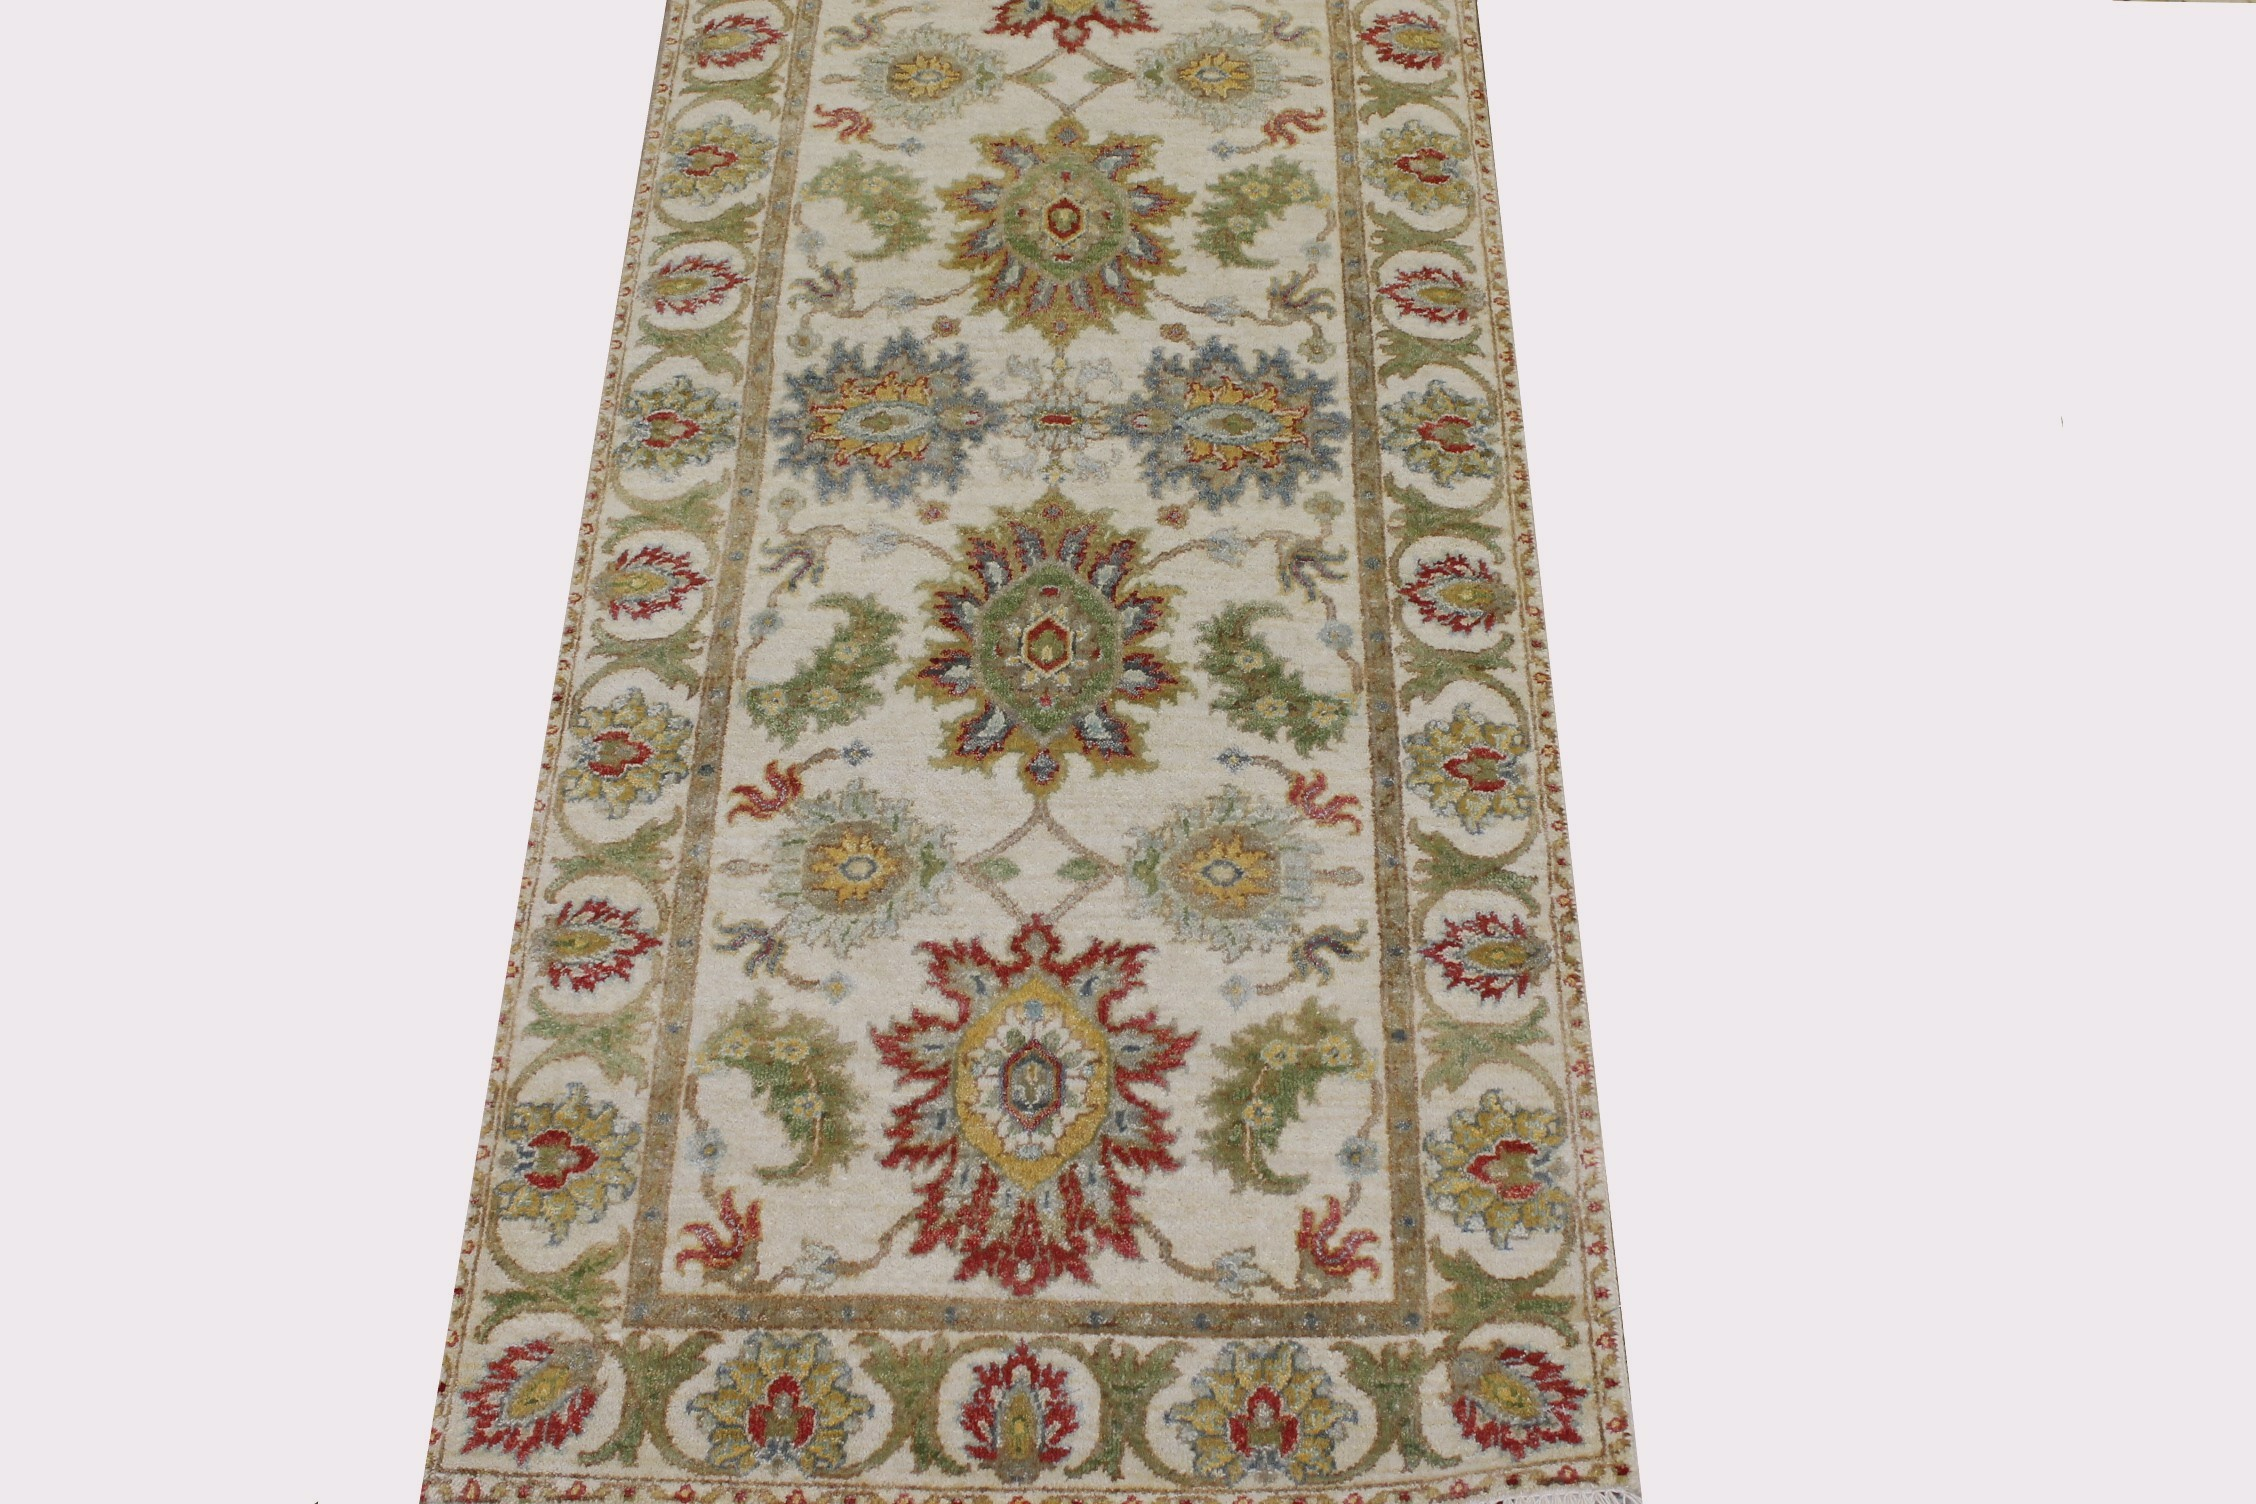 6 ft. Runner Traditional Hand Knotted Wool Area Rug - MR022651